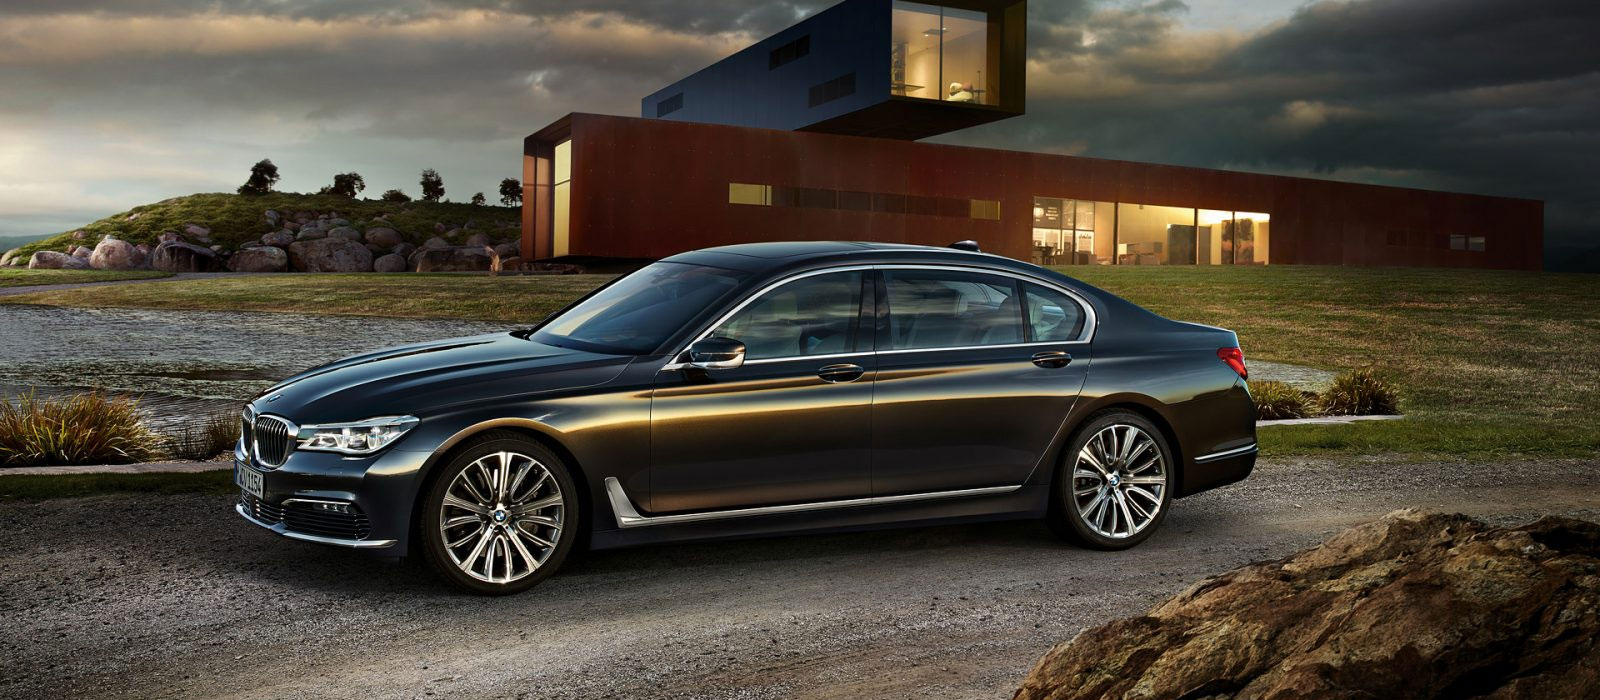 BMW Wagner - BMW 730d xDrive inkl. Service Angebot